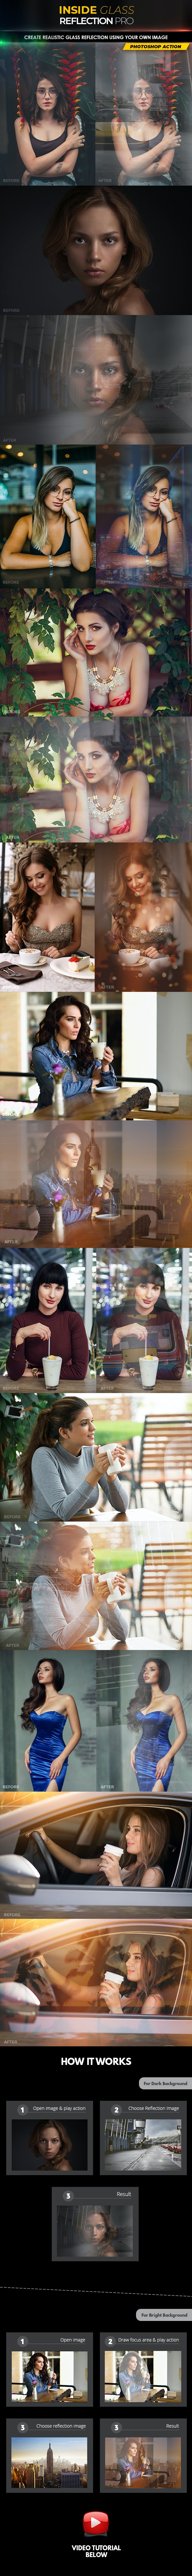 Inside Glass Reflection Pro - Photoshop Action - Photo Effects Actions